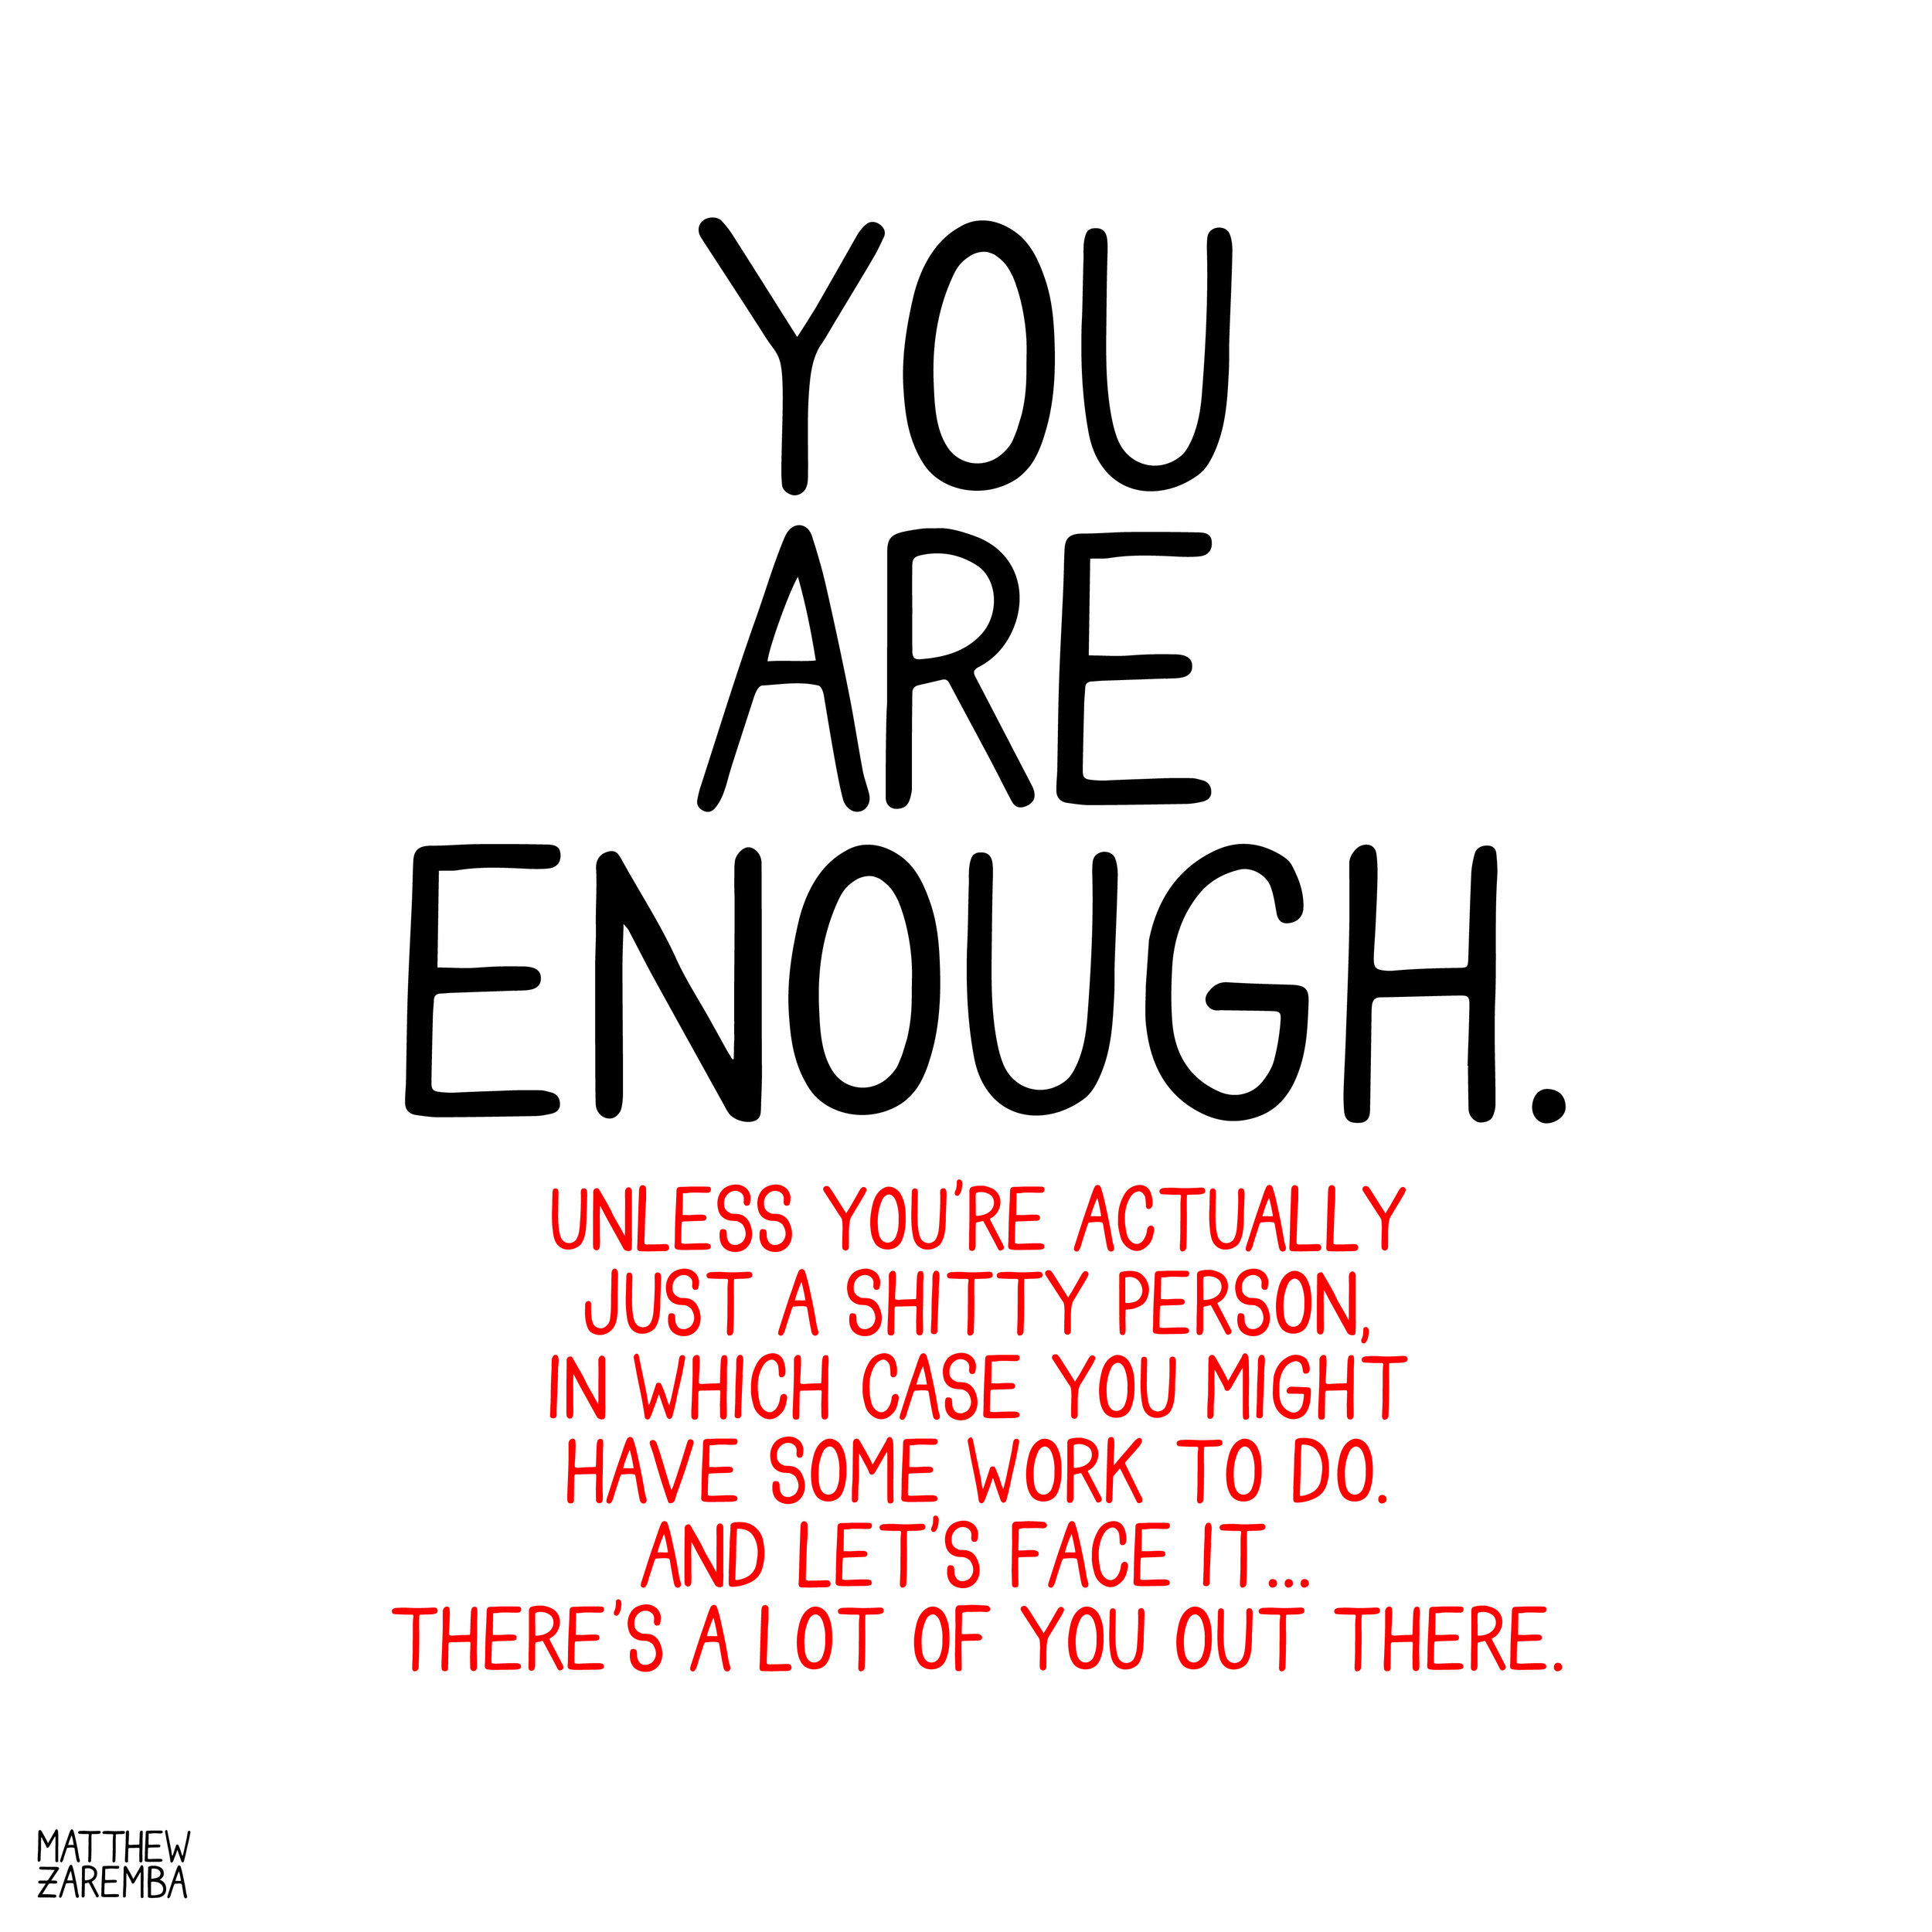 youareenough-01.jpg